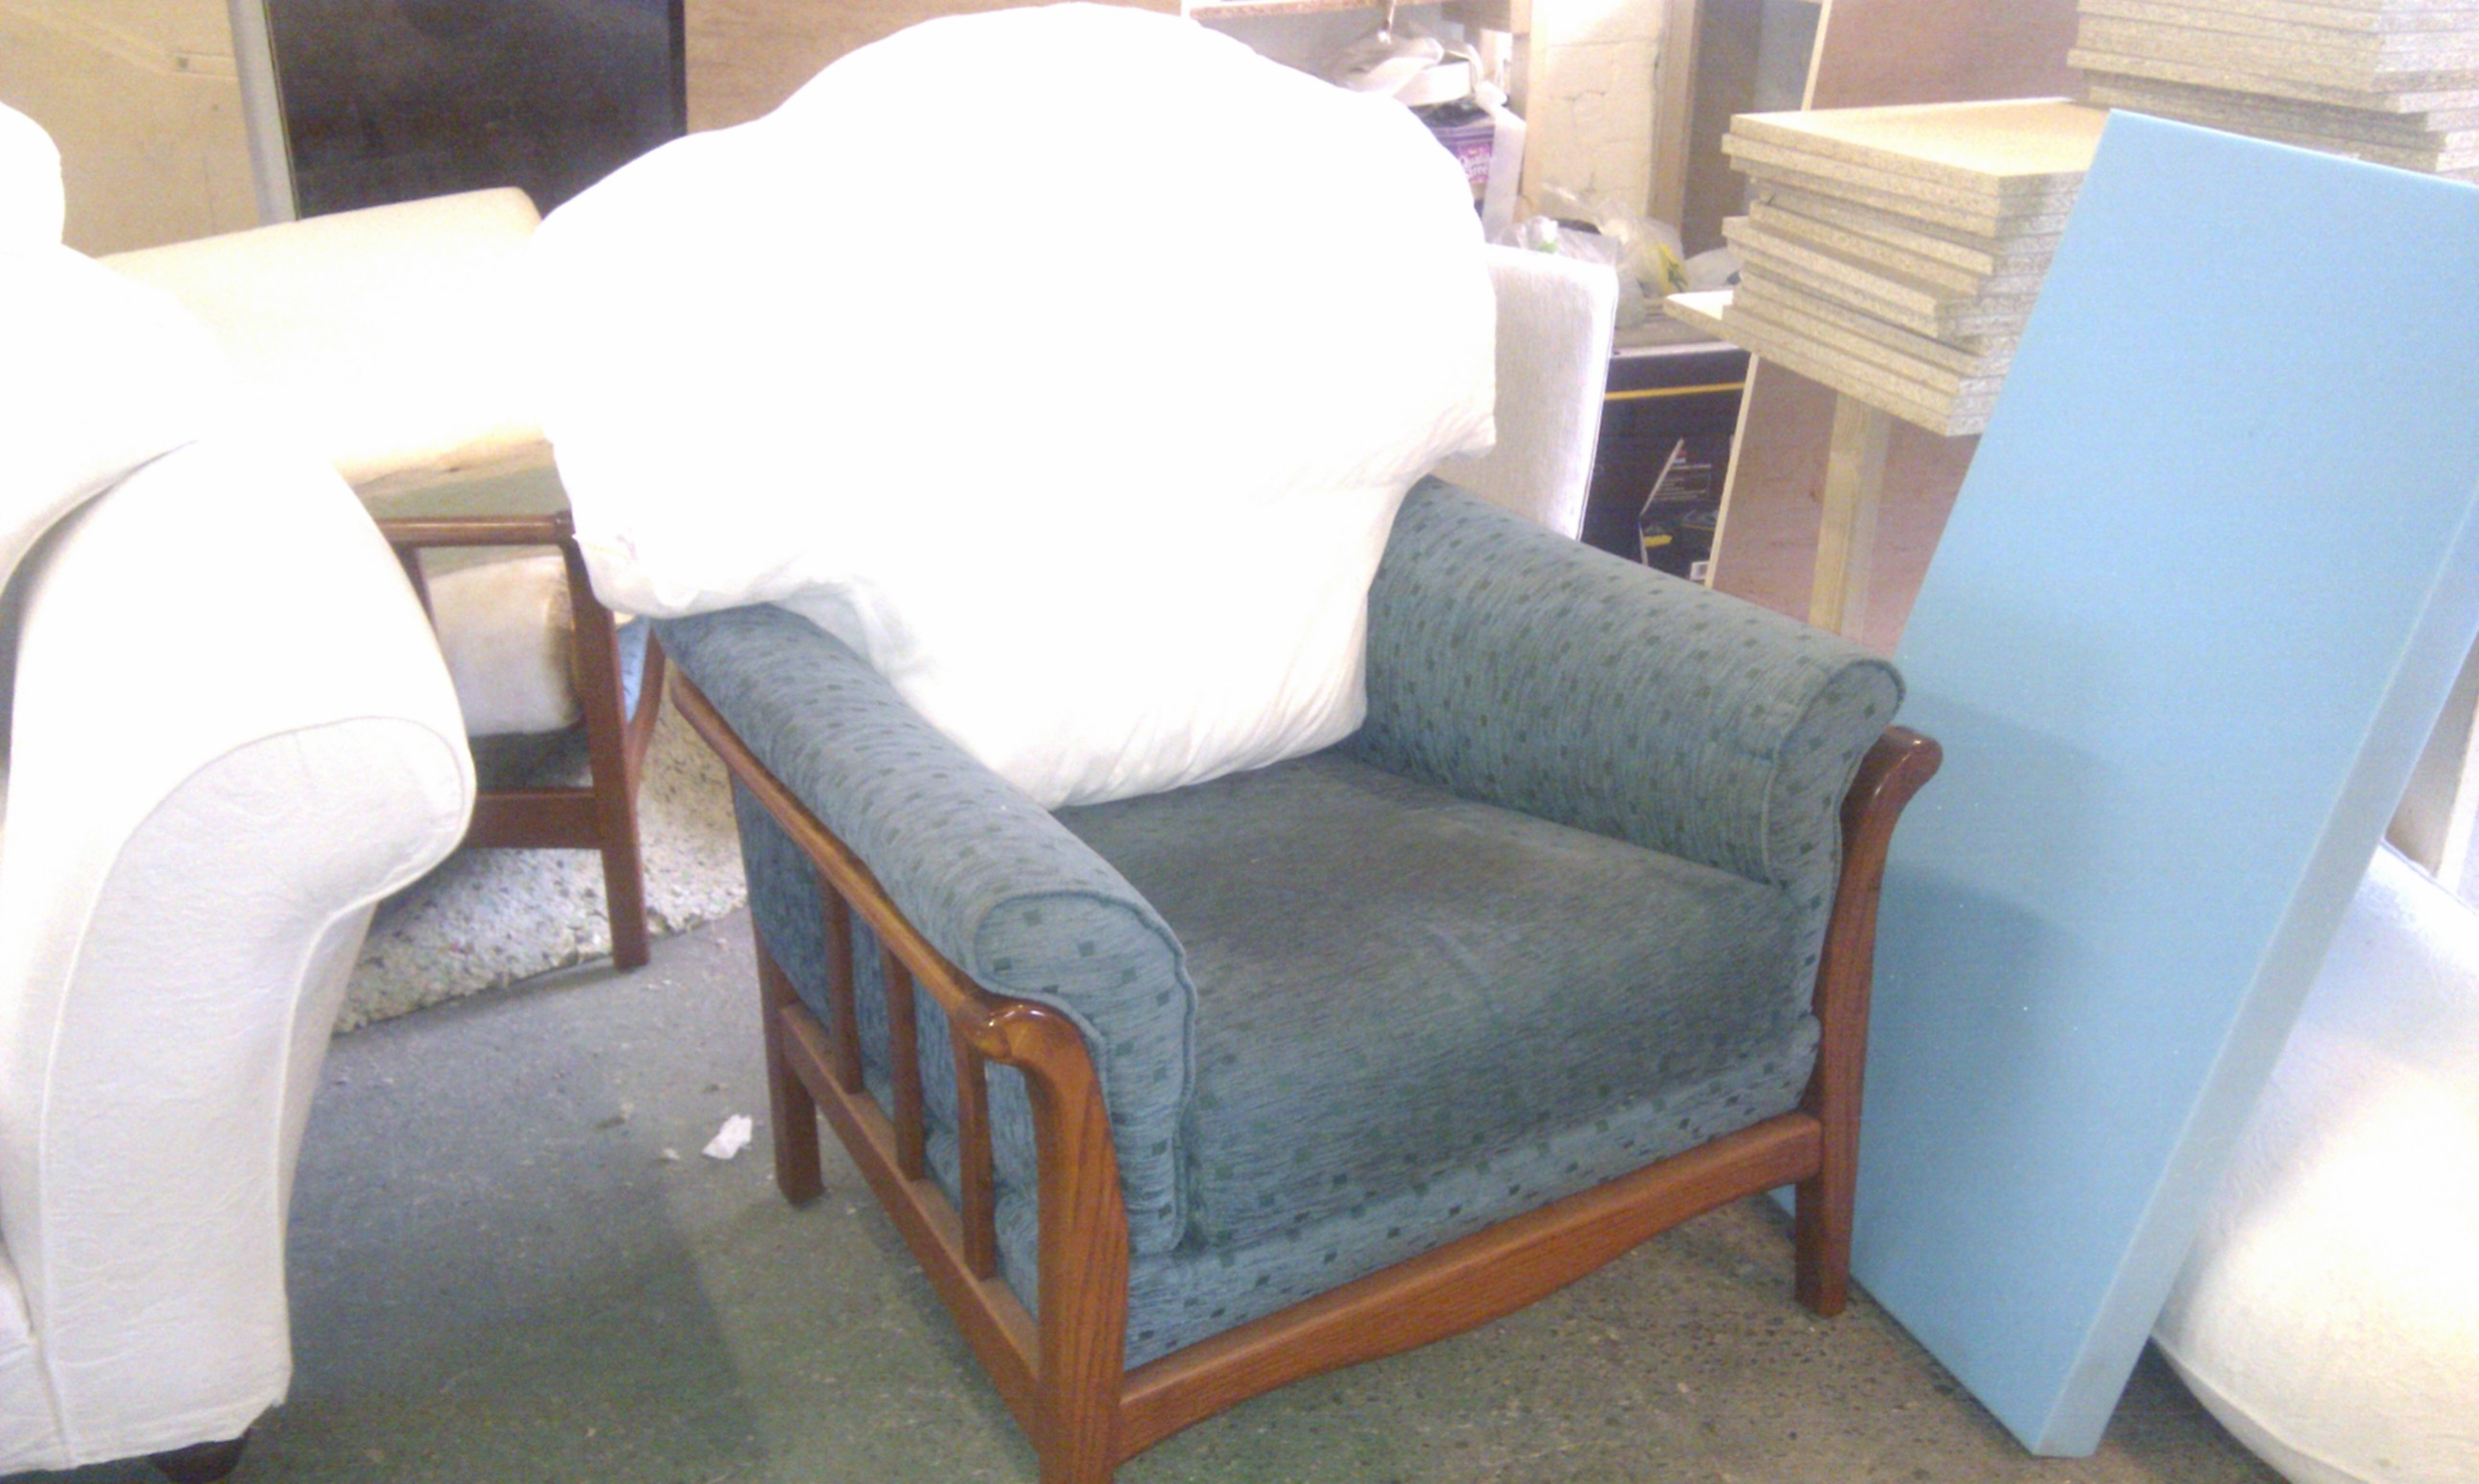 sofa upholstery repair leeds double futon bed india cintique chair covers ideas